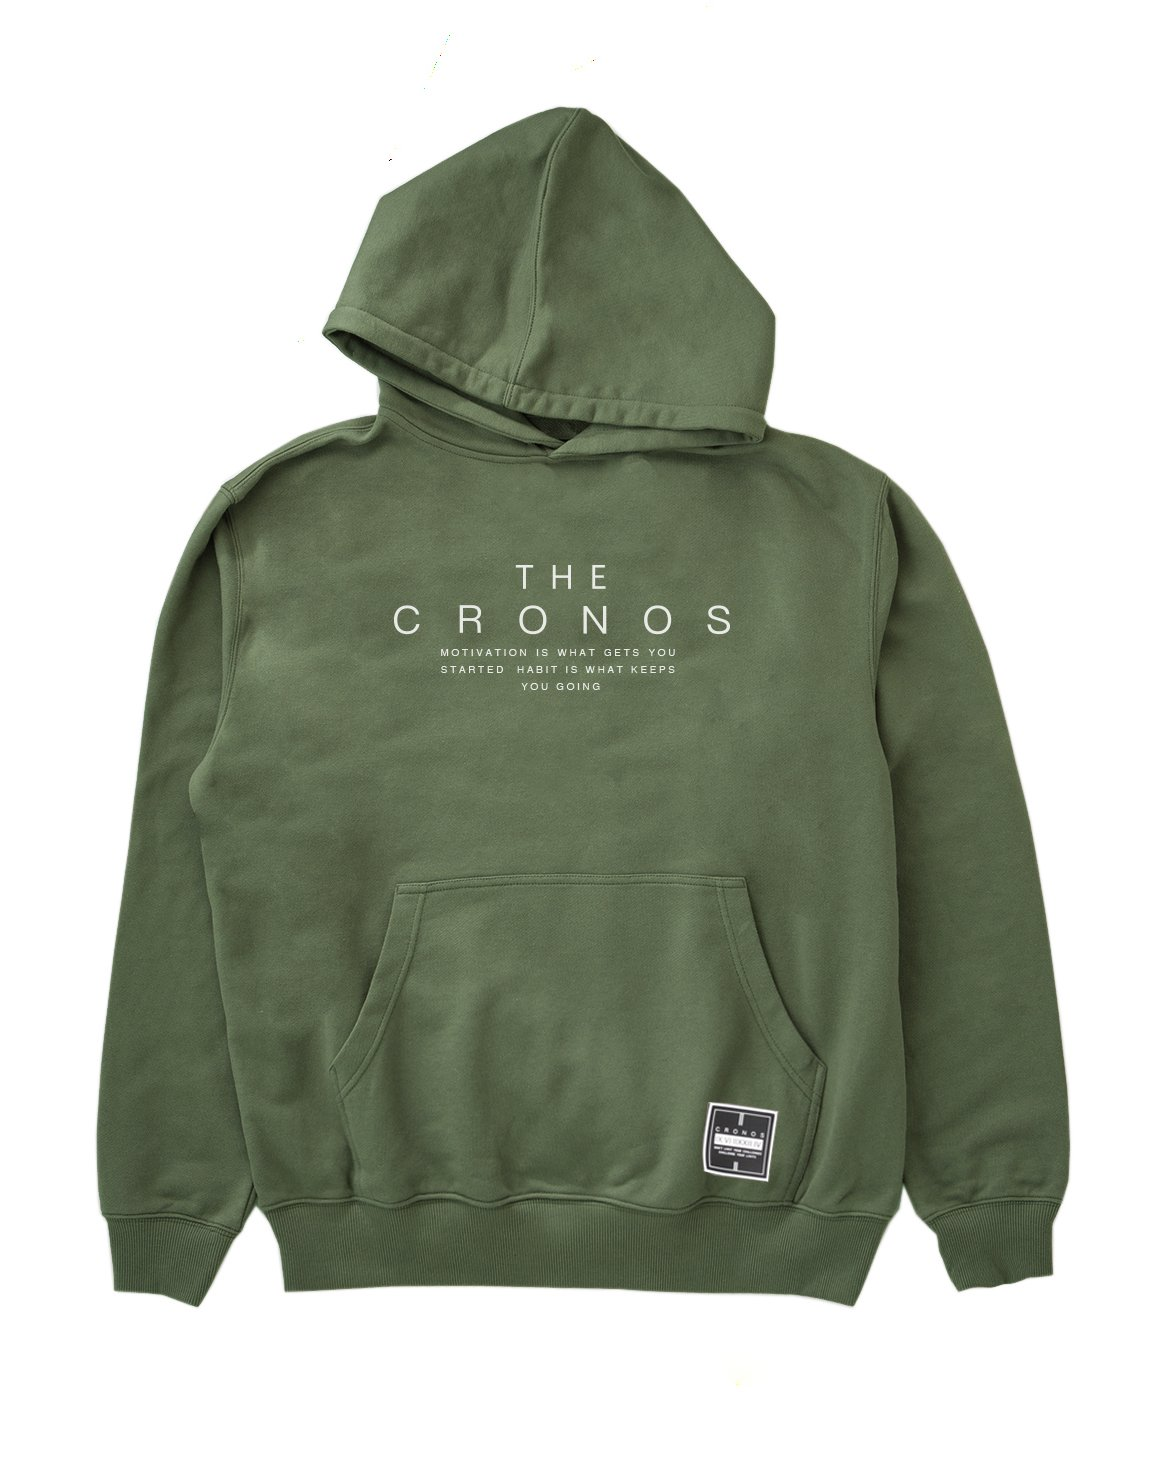 <img class='new_mark_img1' src='https://img.shop-pro.jp/img/new/icons1.gif' style='border:none;display:inline;margin:0px;padding:0px;width:auto;' />CRONOS SENTENCE PULL OVER PARKA 【OLIVE&KHAKI】